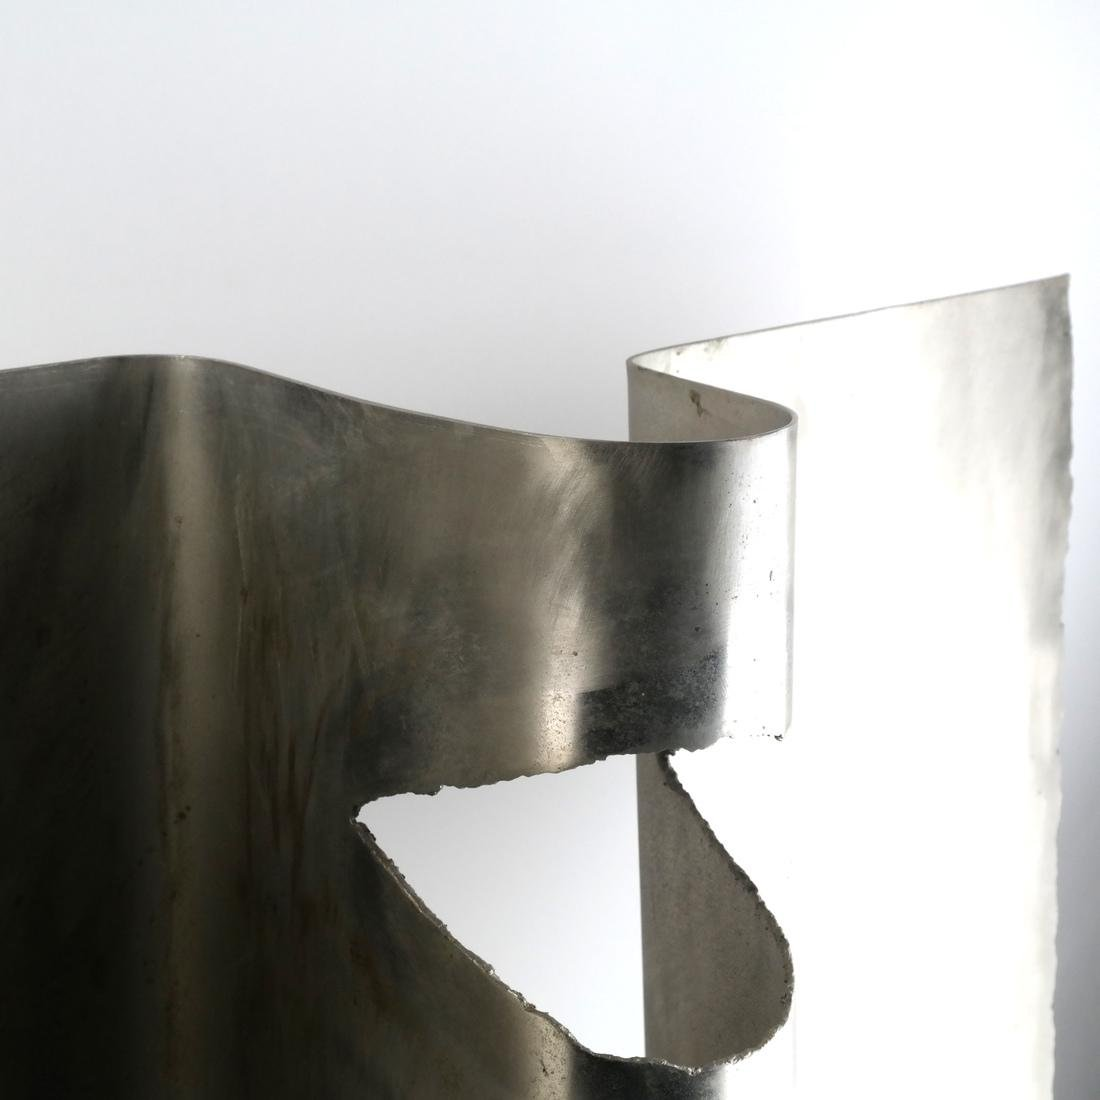 Lila Katzen Steel Sculpture - 3